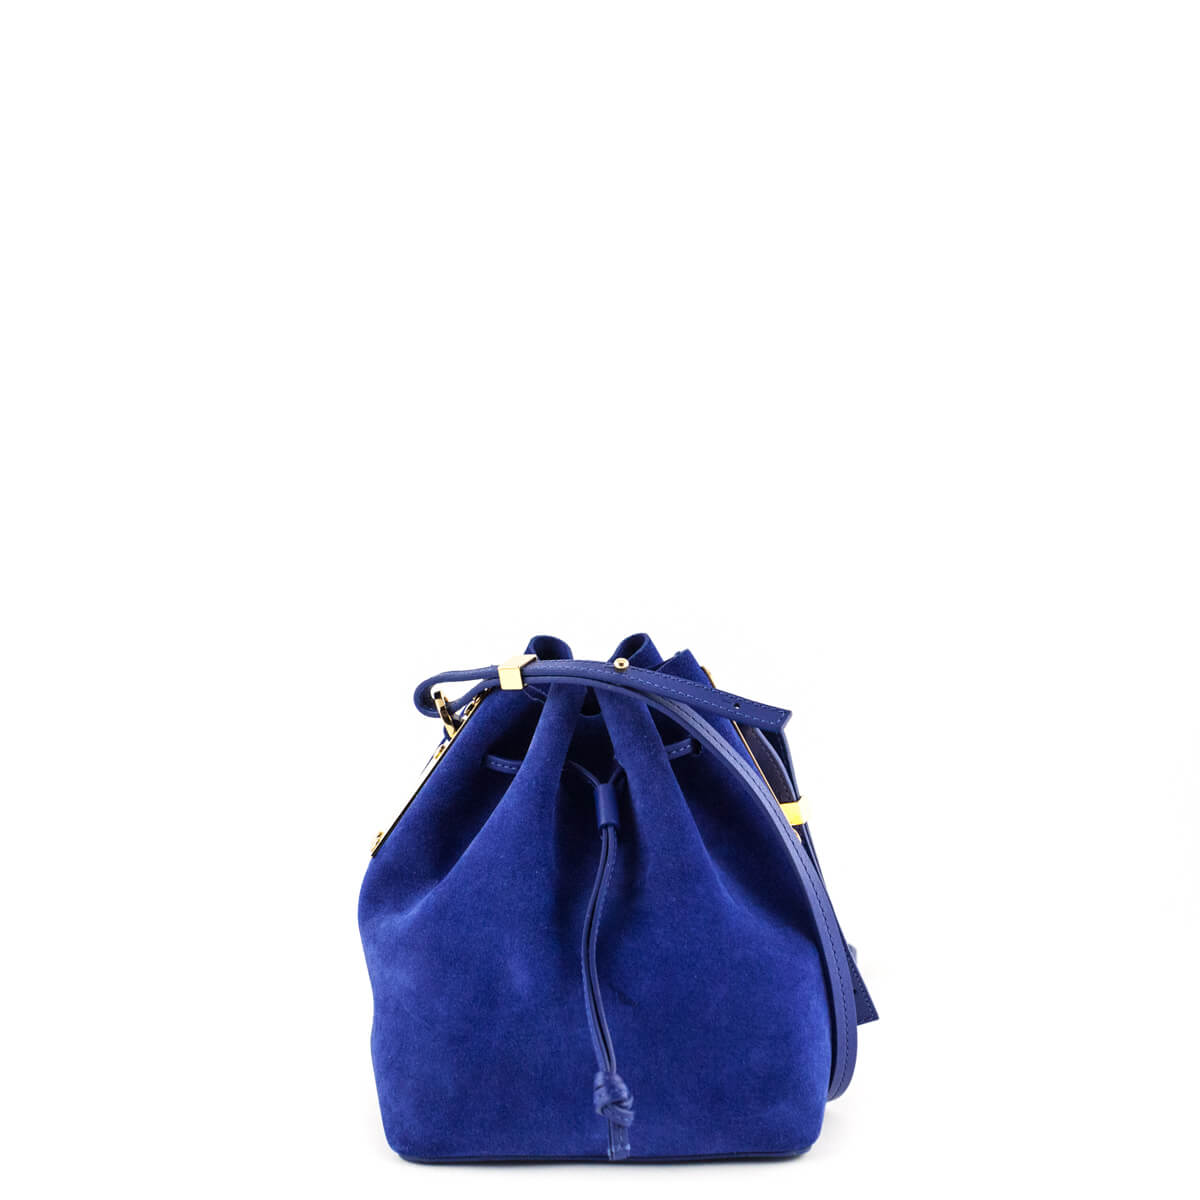 927bfe9501f8 https   www.lovethatbag.ca  daily https   www.lovethatbag.ca products ...